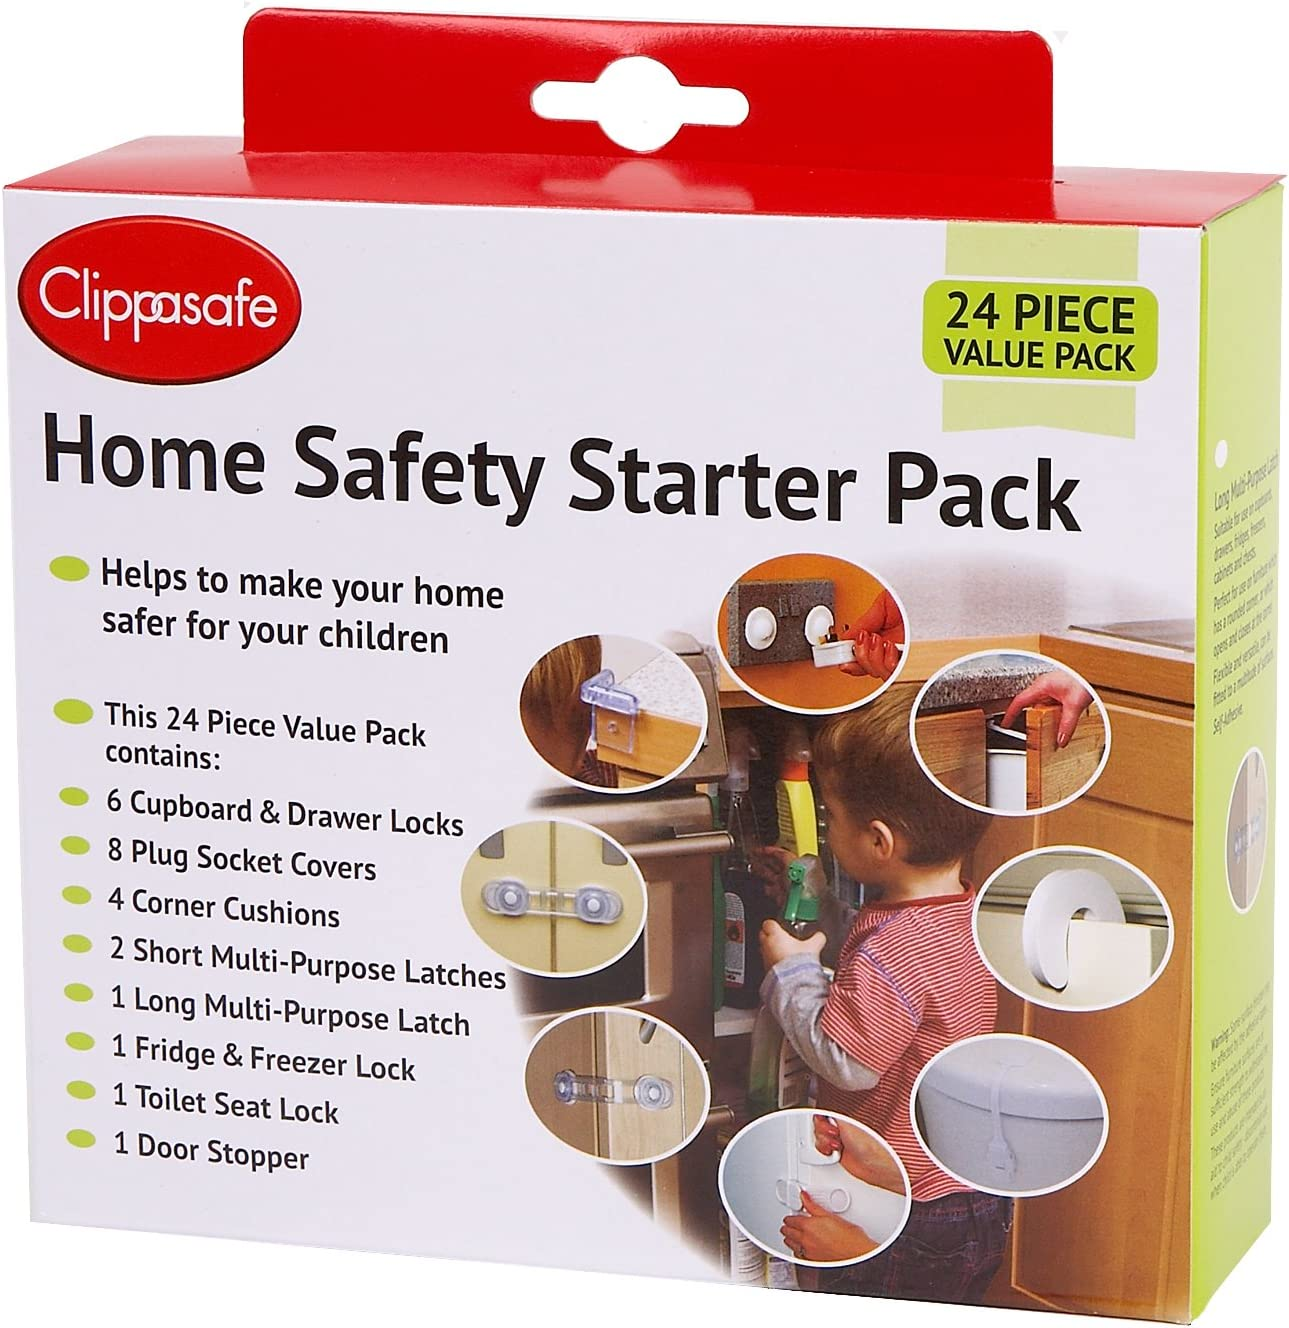 CLIPPASAFE 30 PIECE GIFT BOX HOME SAFETY STARTER PACK